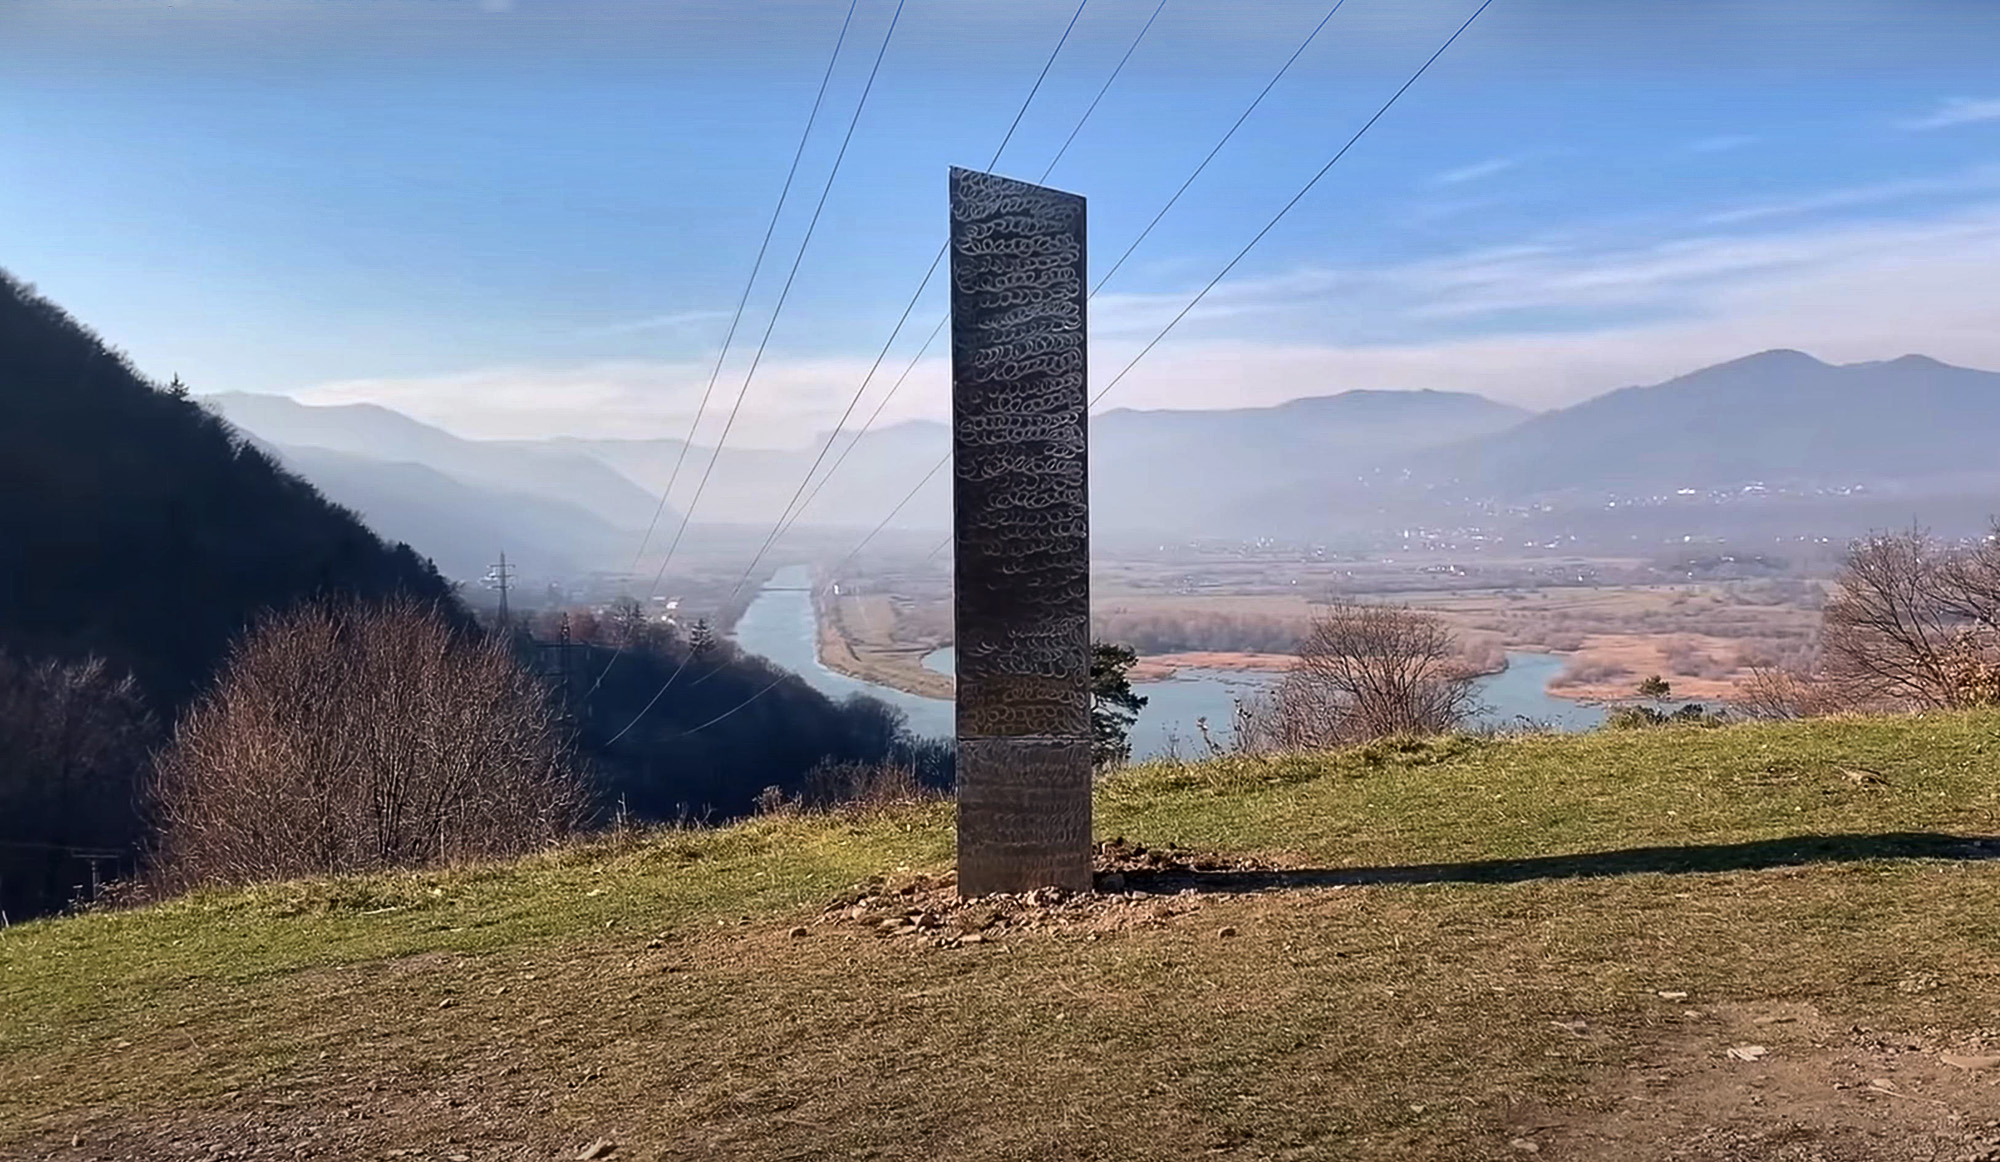 A mysterious metal monolith, similar to the one found in Utah, was discovered near an ancient Dacian fortress in Romania.